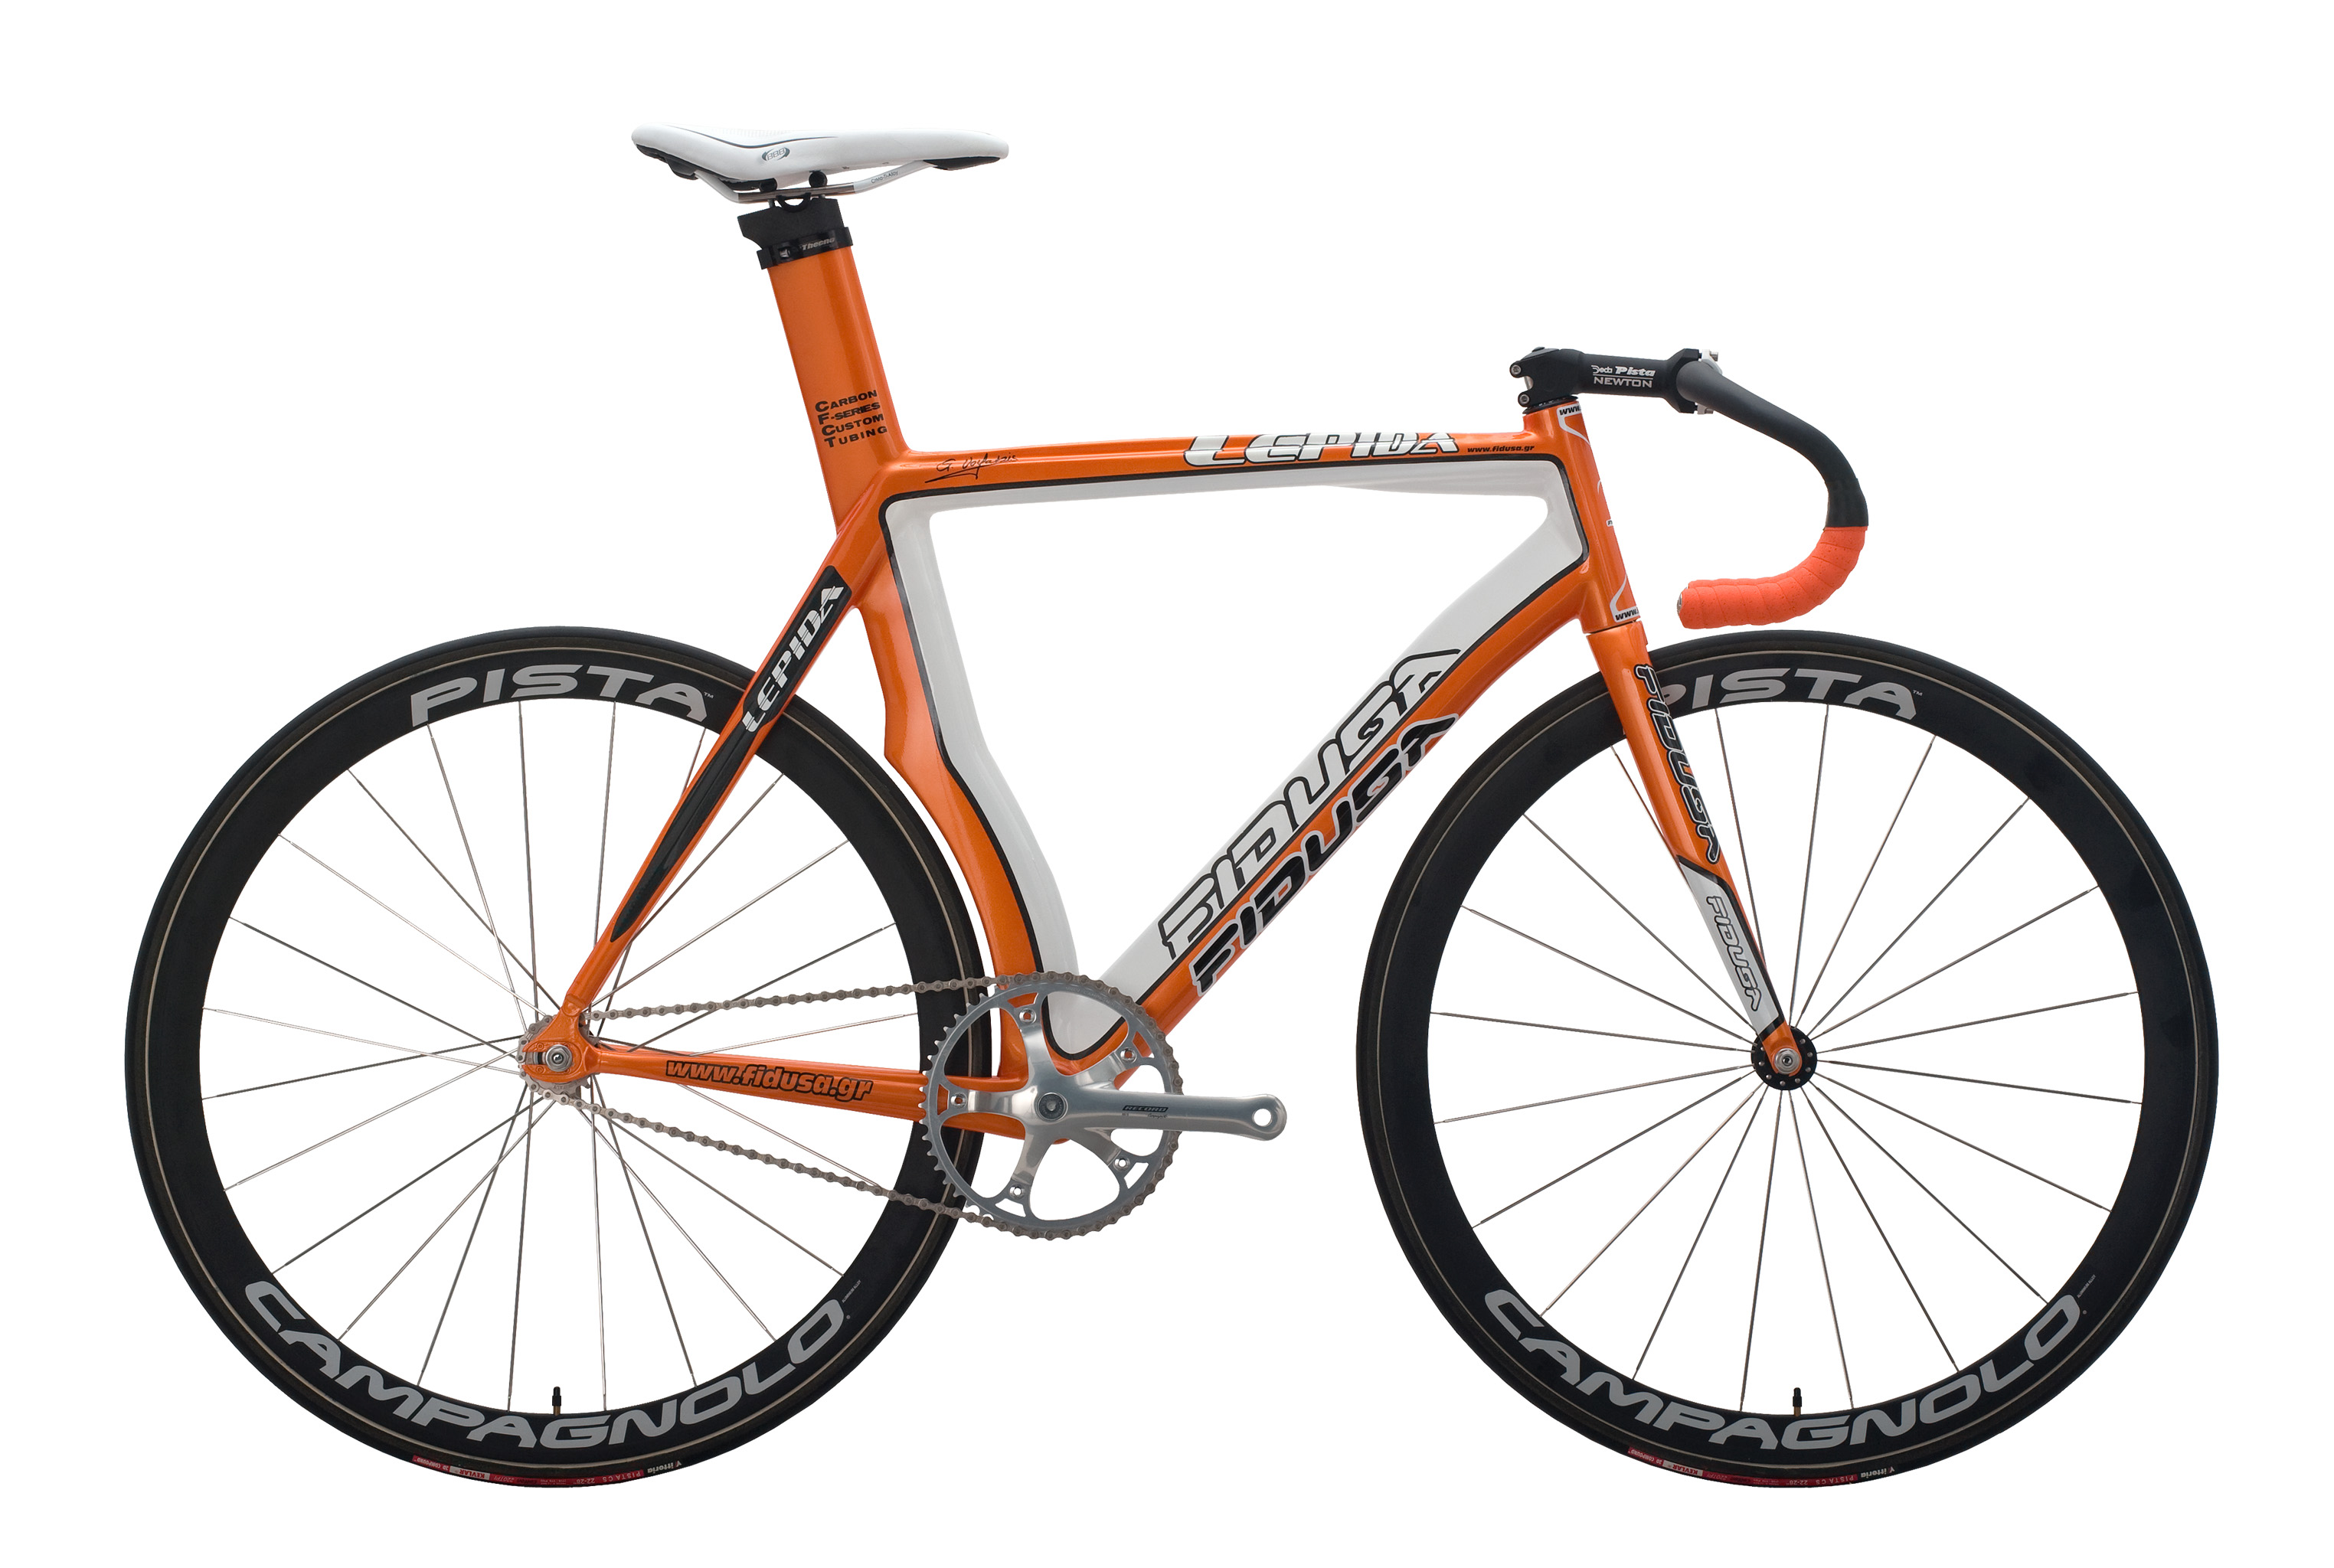 Lepida-pista-orange_09 Pista Lepida / Lepida custom carbon track bike